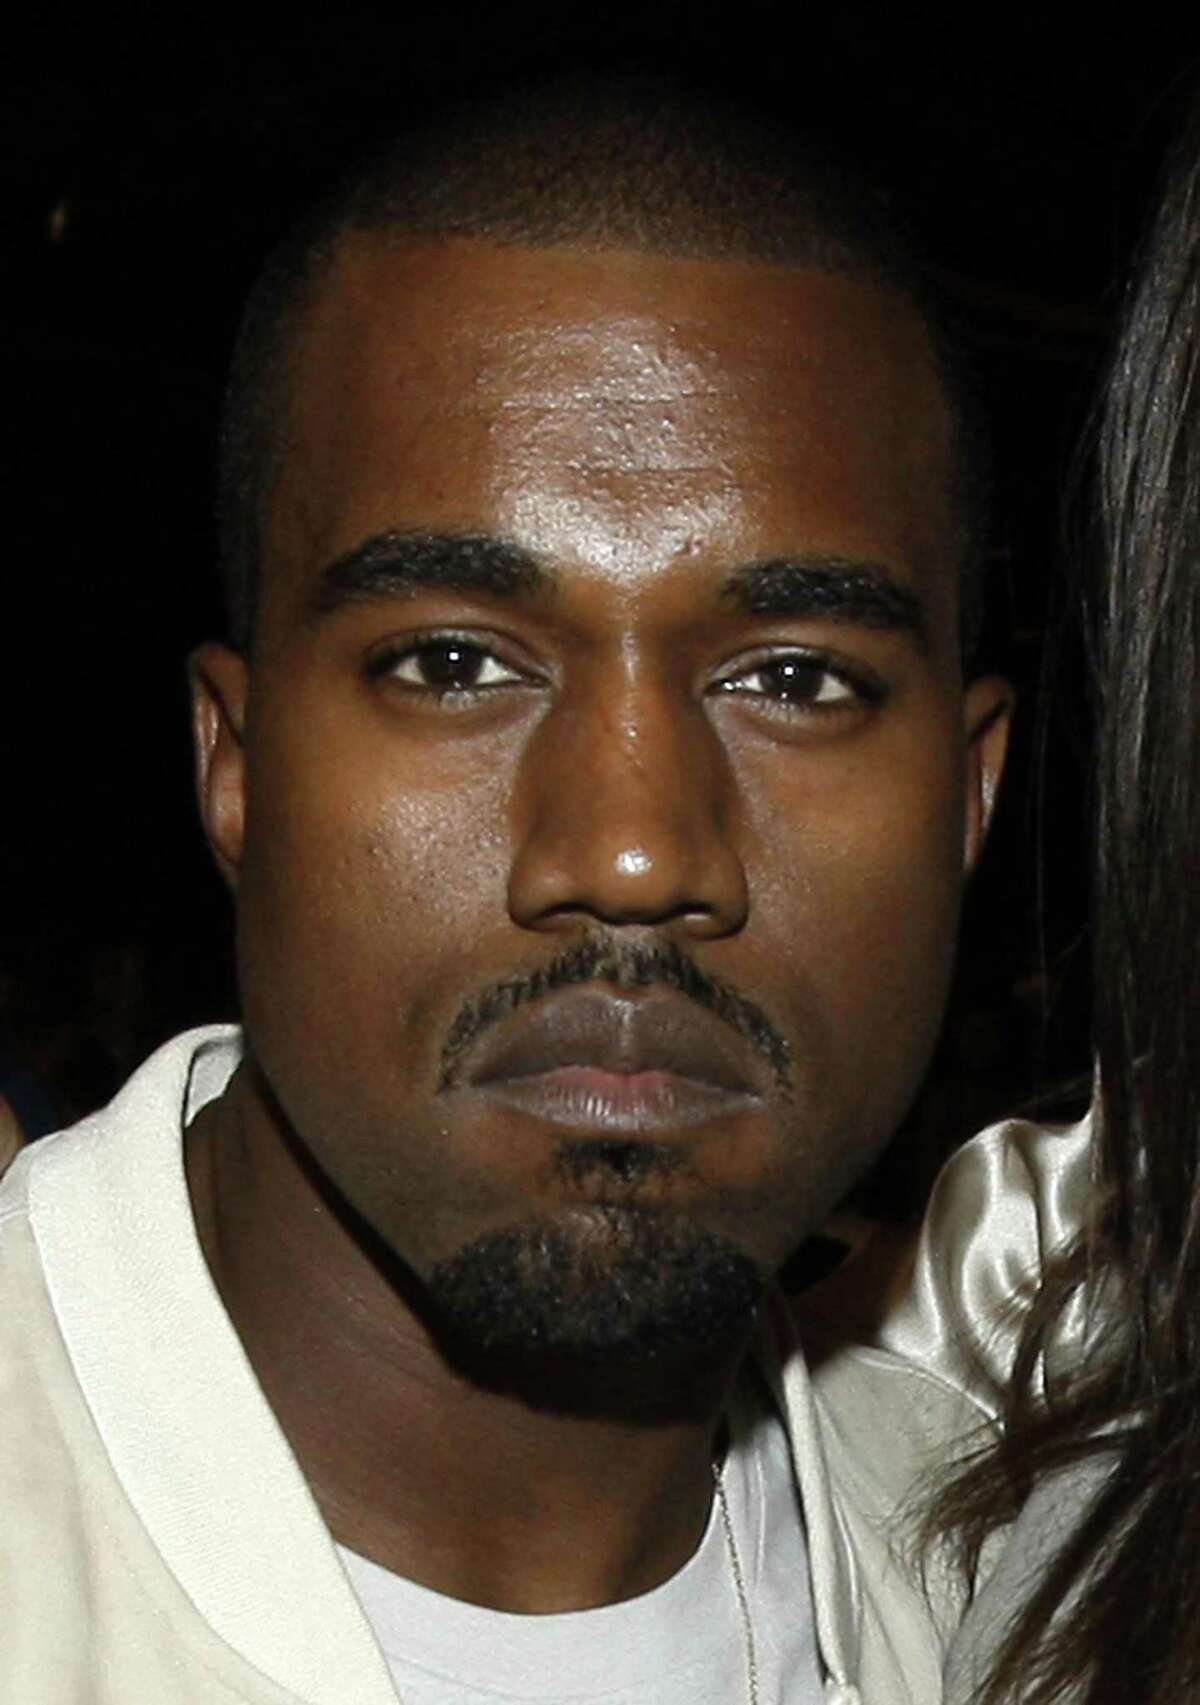 FILE - In this June 28, 2009 file photo, singer Kanye West appears backstage at the 9th Annual BET Awards in Los Angeles. (AP Photo/Matt Sayles, file)